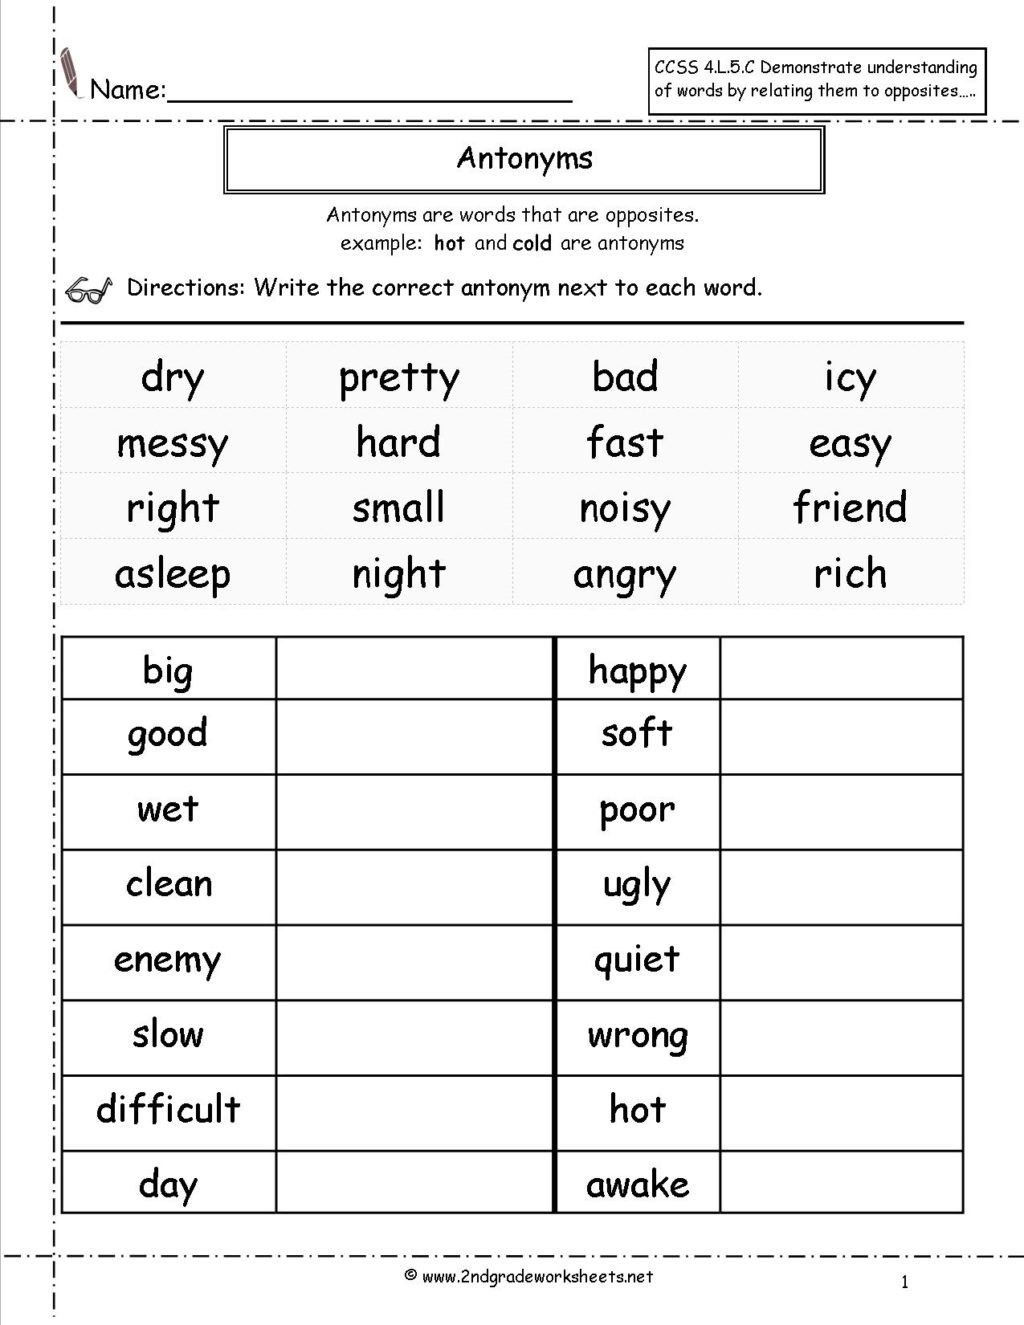 Probability Worksheets High School Pdf Antonyms Math Worksheet Free Languagegrammar Worksheets and